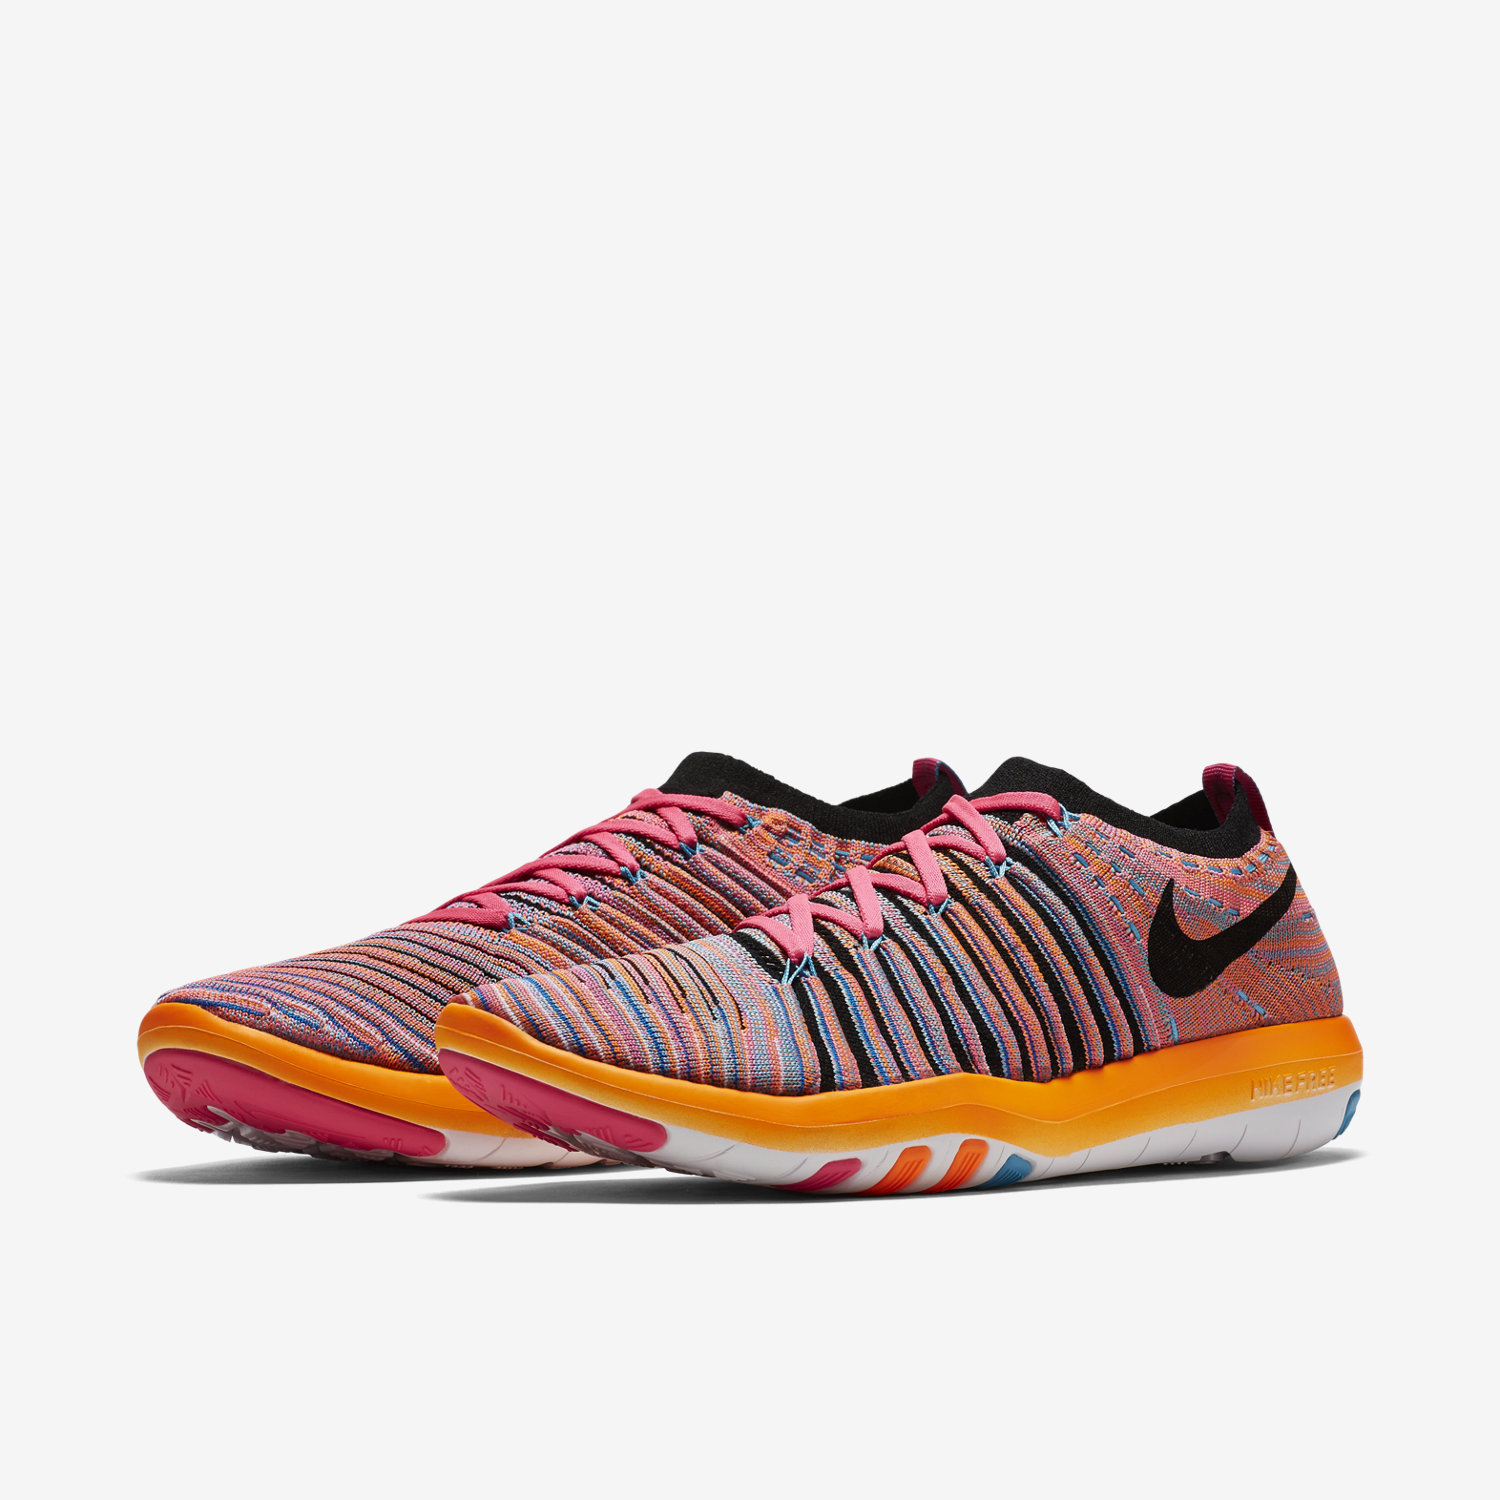 ... 5.0 gold orange nike free transform flyknit womens training shoe. nike